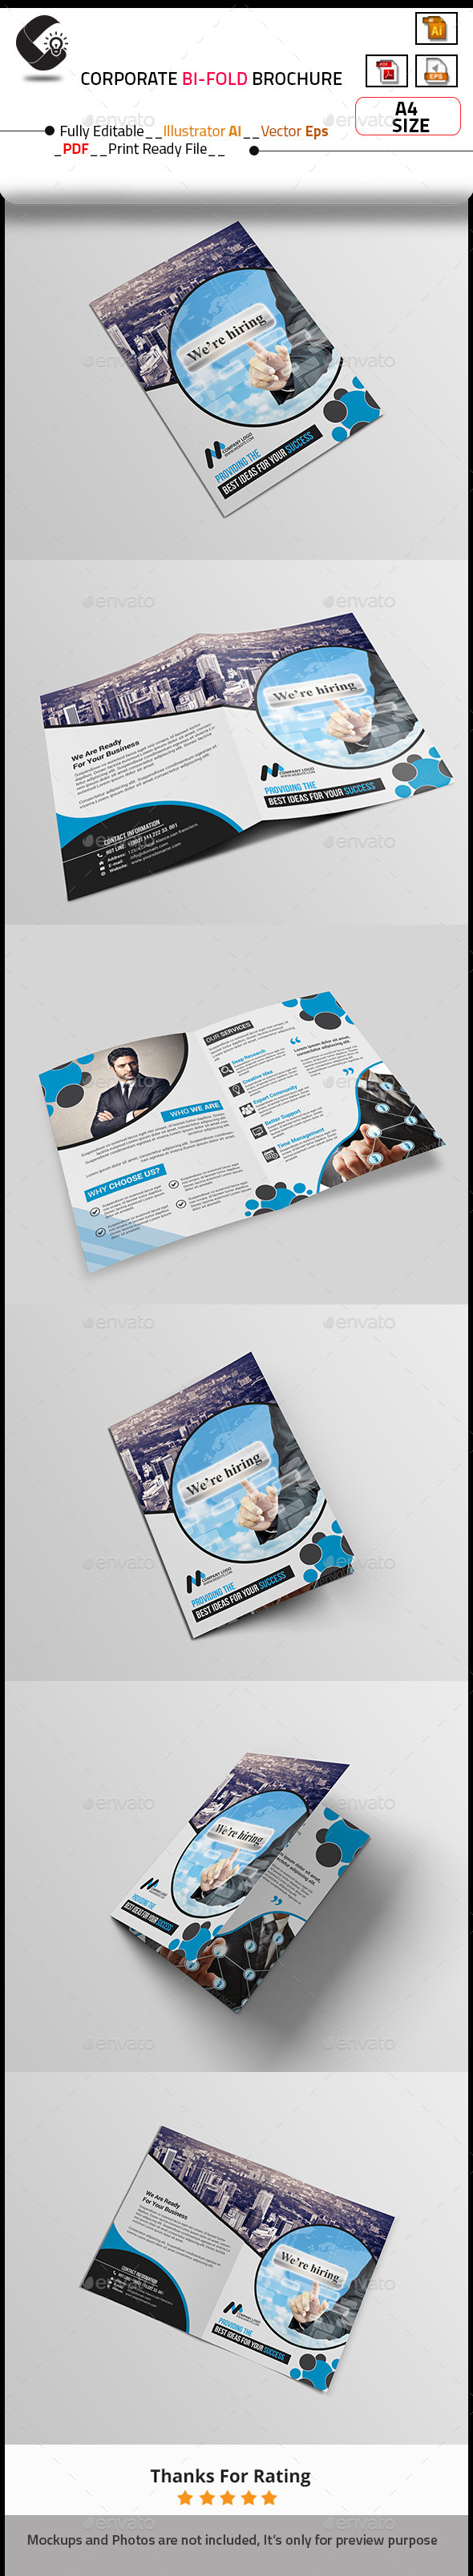 GraphicRiver Corporate Bi-Fold Brochure 10787452